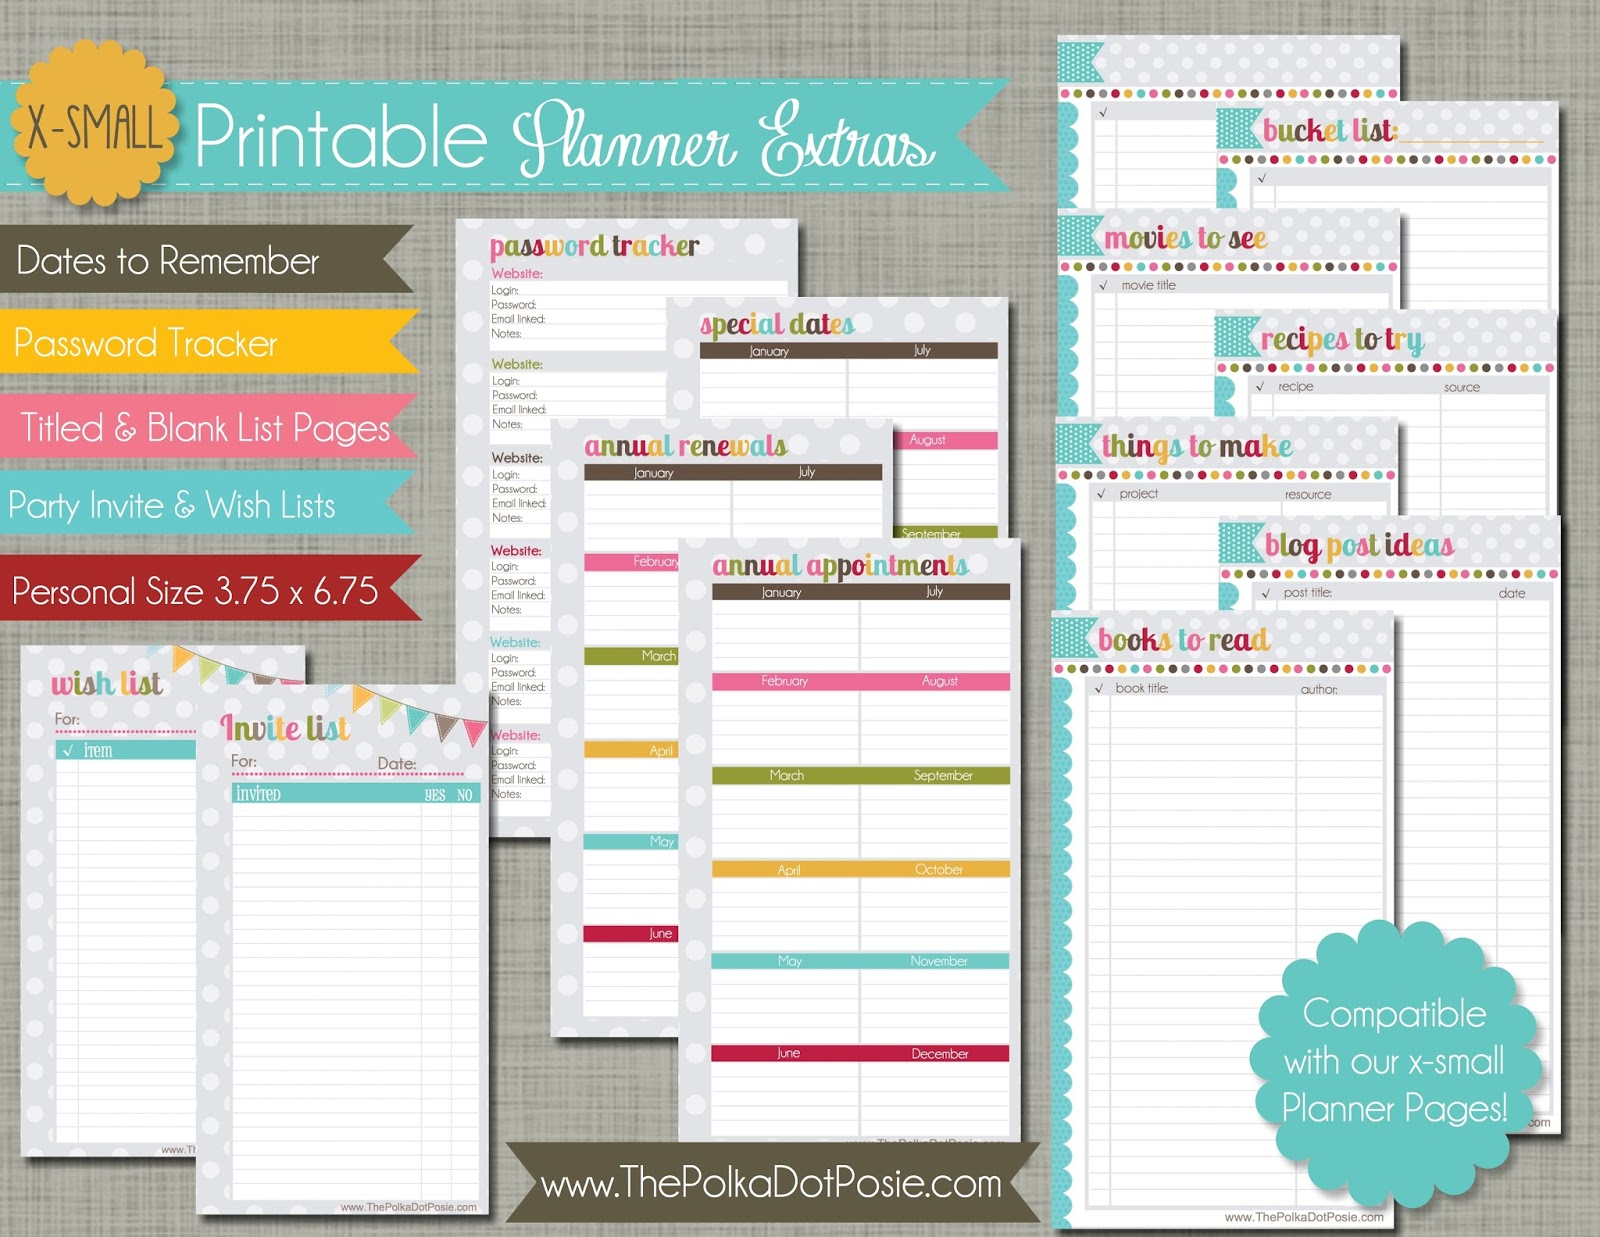 ... calendar pages, we also have some adorable printable calendar stickers